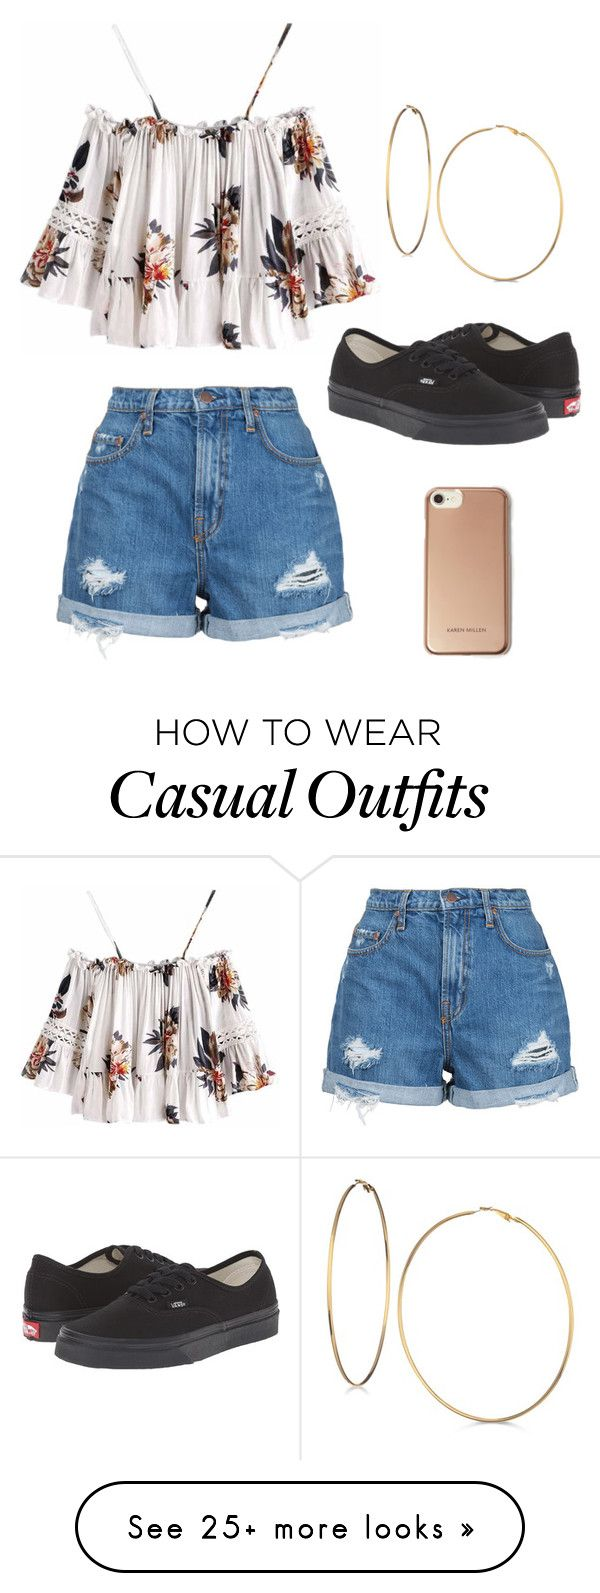 """""""Outfit ♡"""" by geovanacaroline on Polyvore featuring Nobody Denim, Vans, GUESS and Karen Millen"""